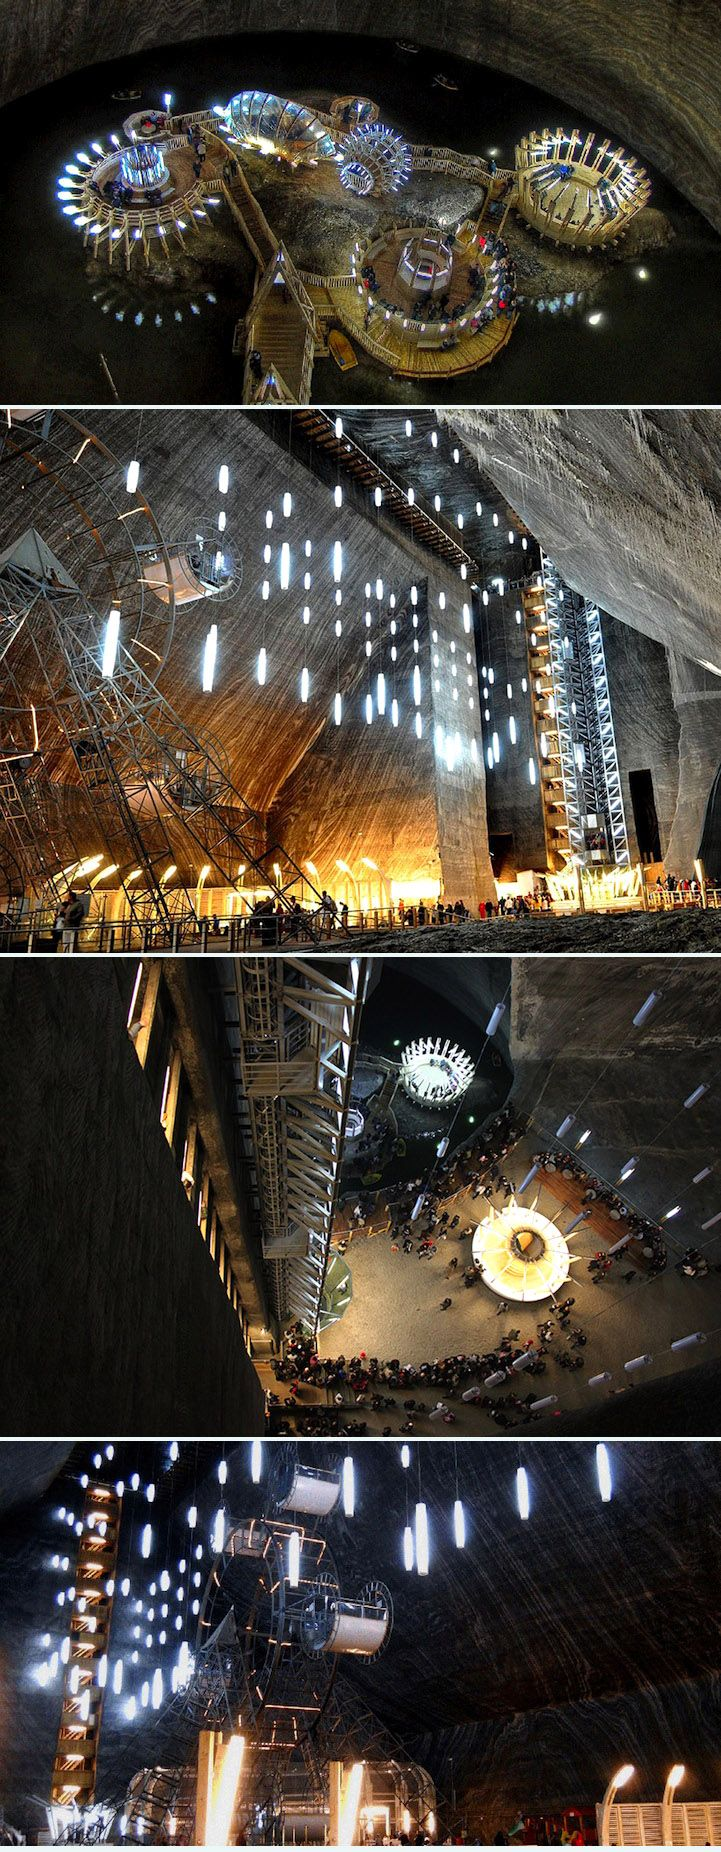 The old Salina Turda Salt Mines, converted into a 370ft-deep museum (Romania)